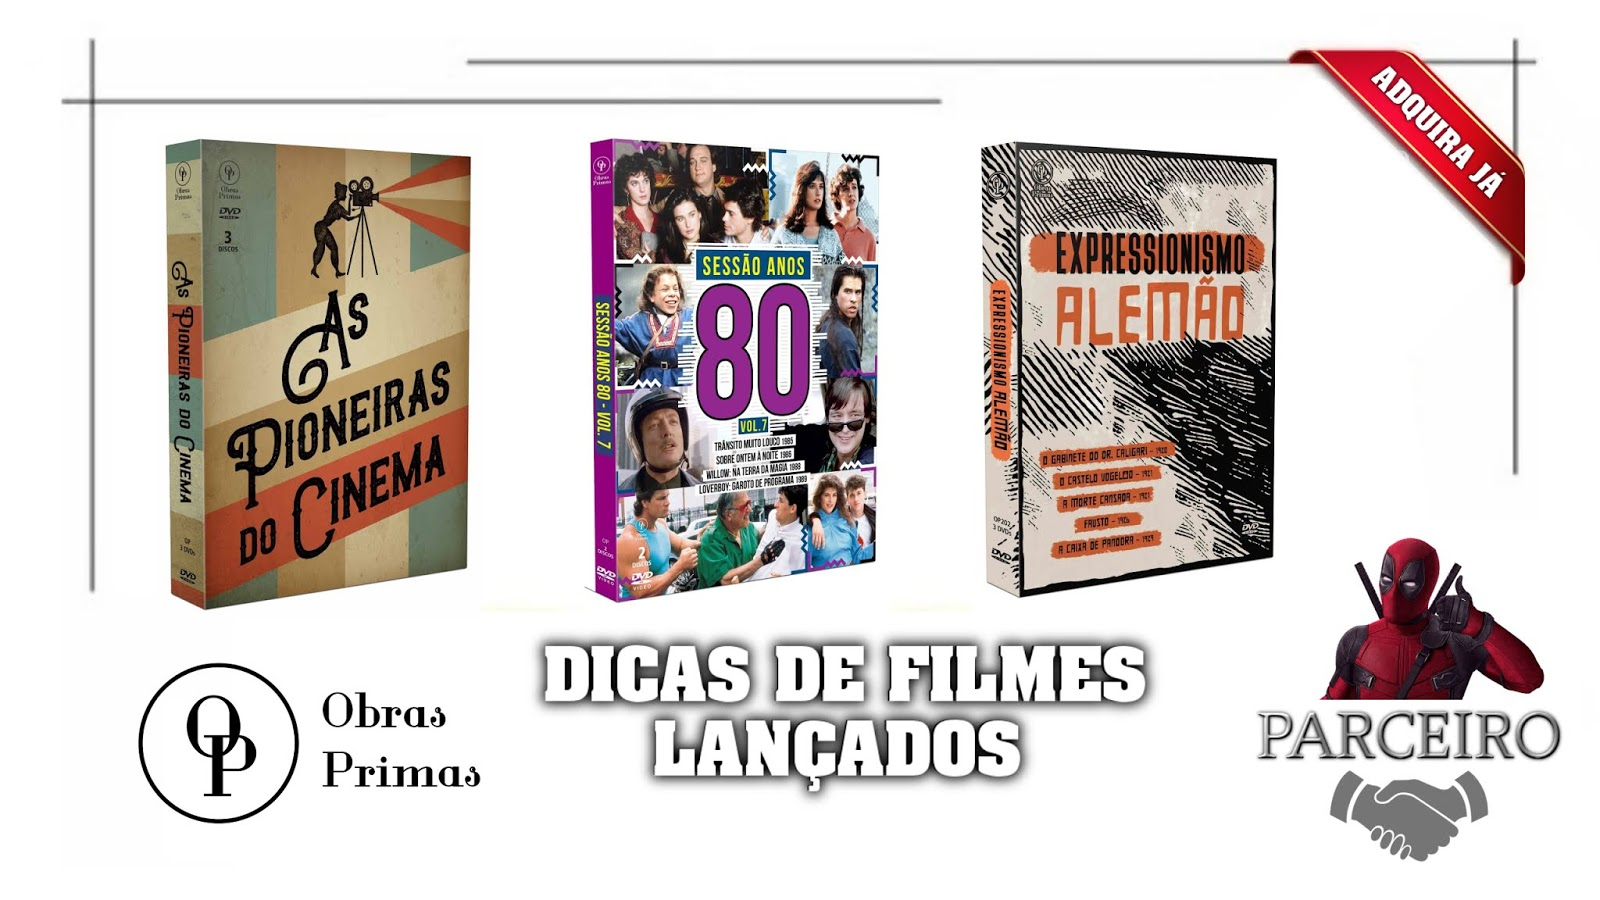 obras-primas-do-cinema-outubro